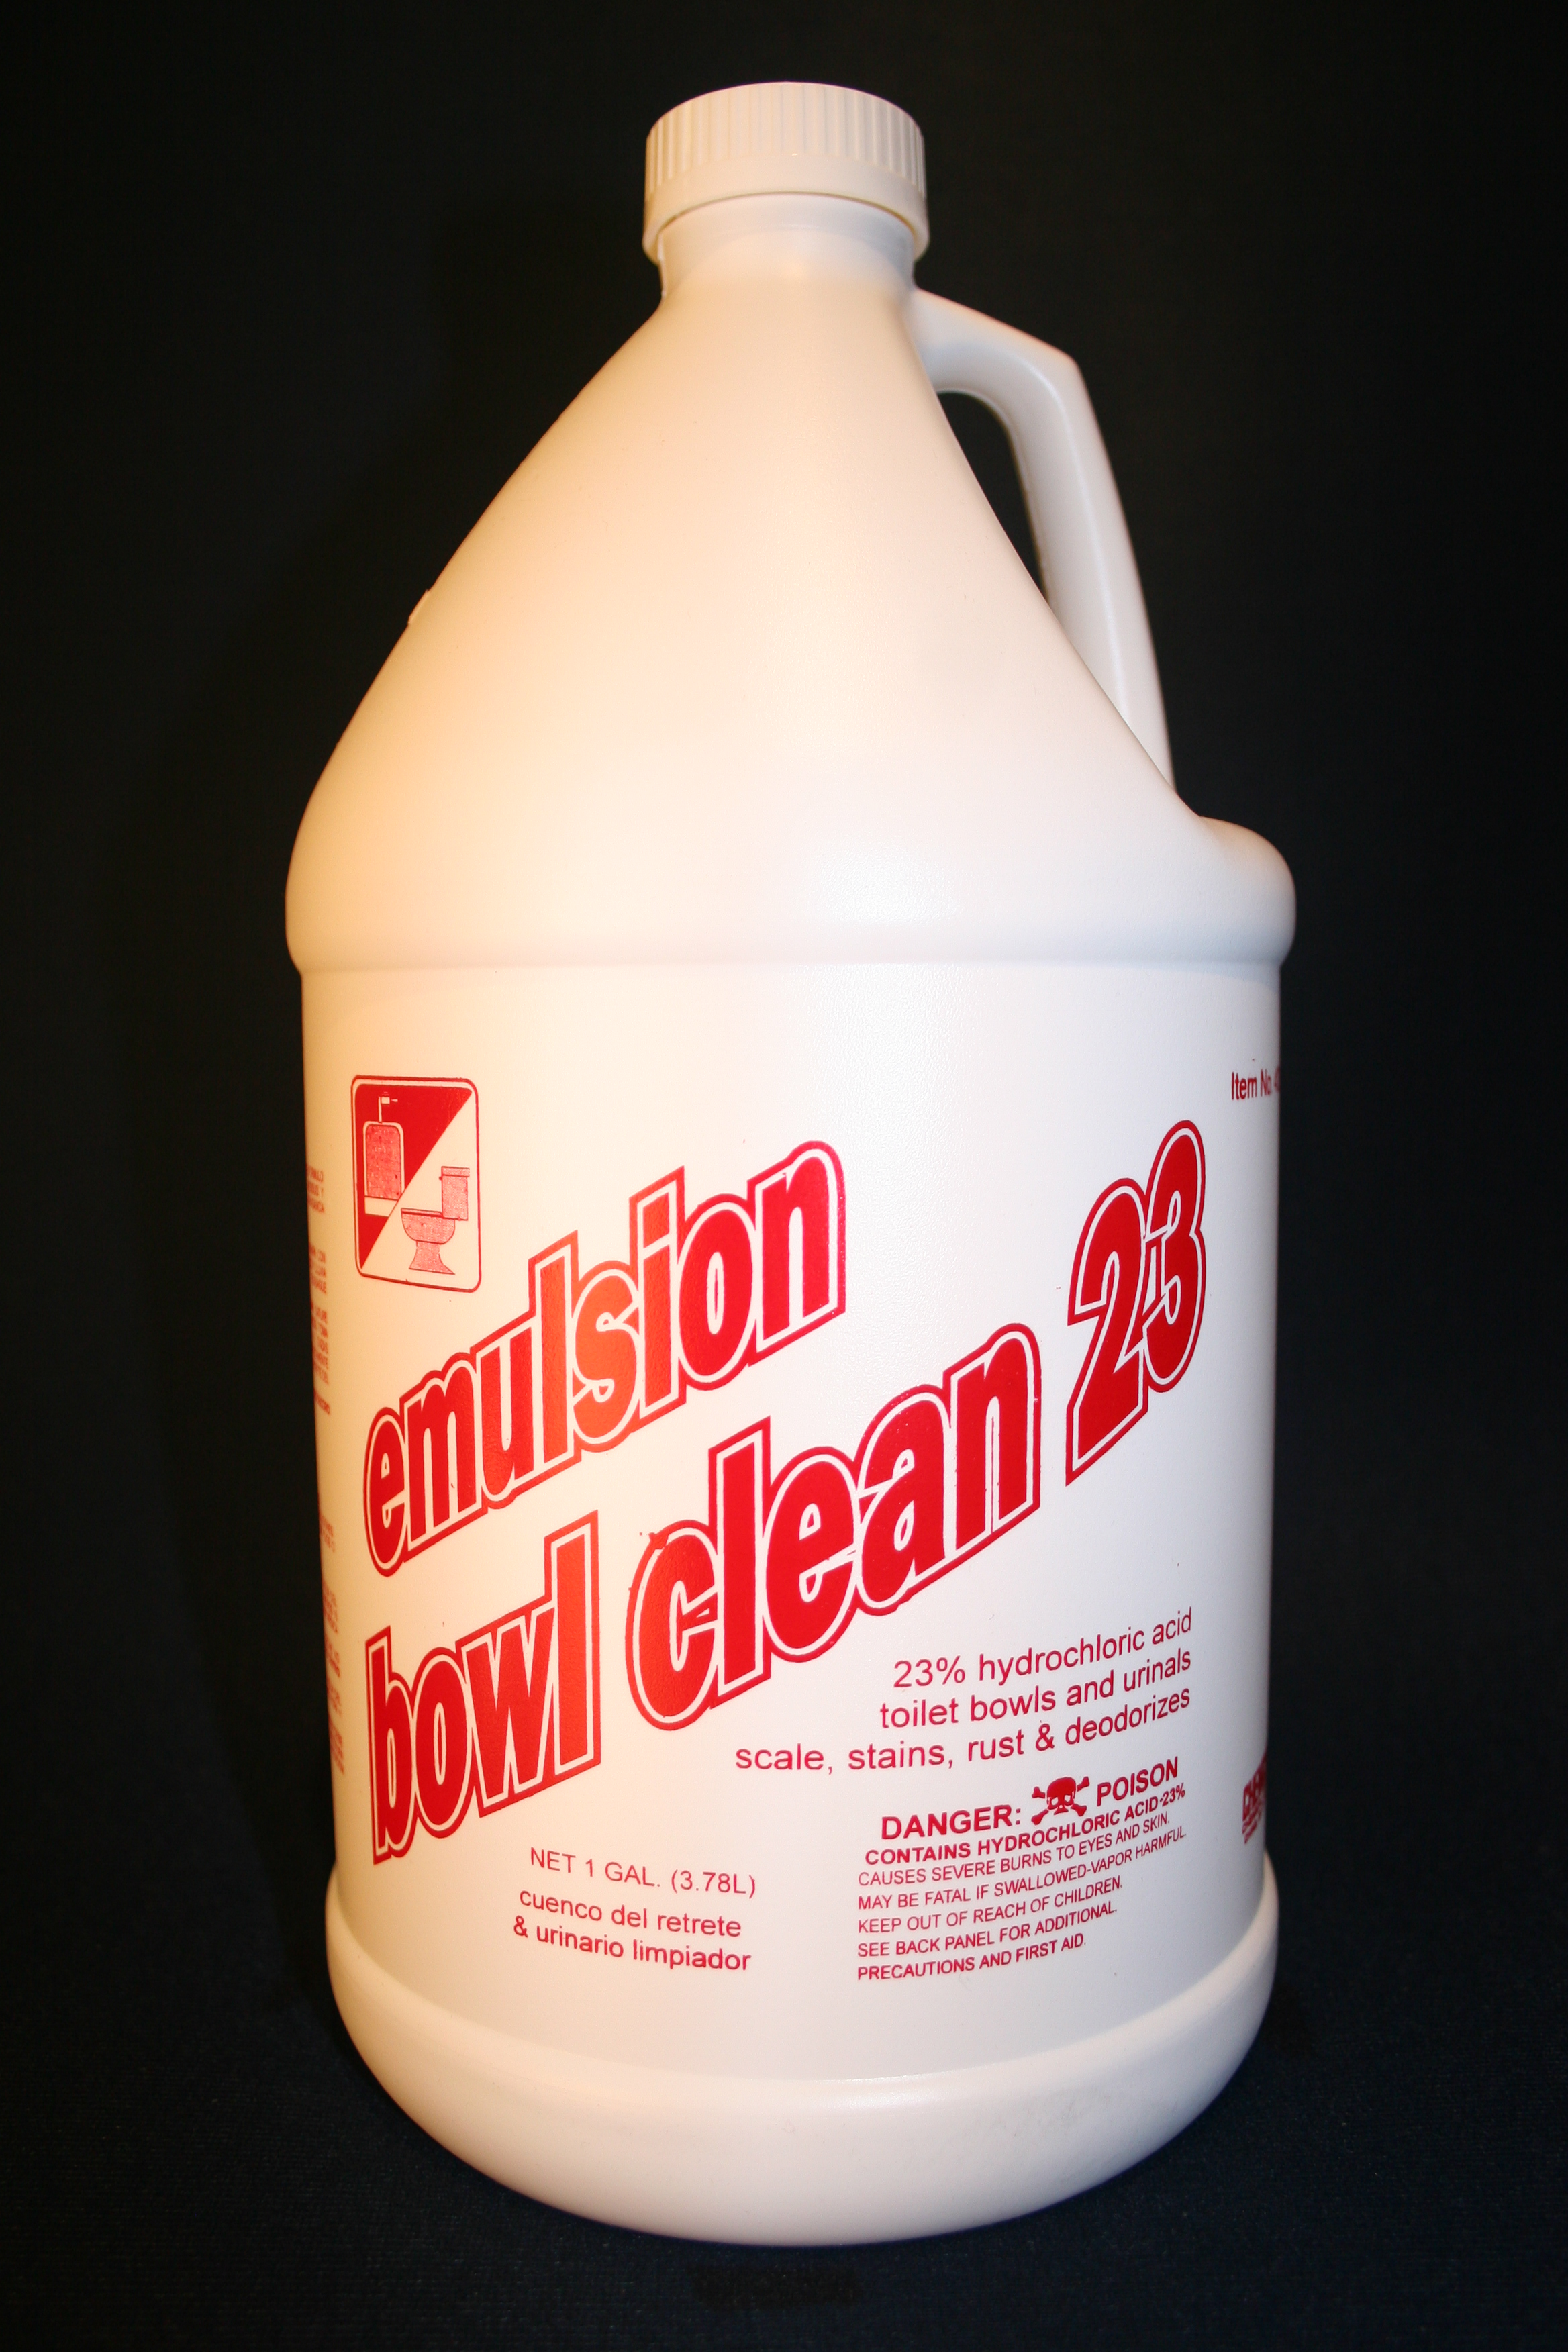 Chemcor Chemical Corporation Emulsion Bowl Clean 23 Hcl